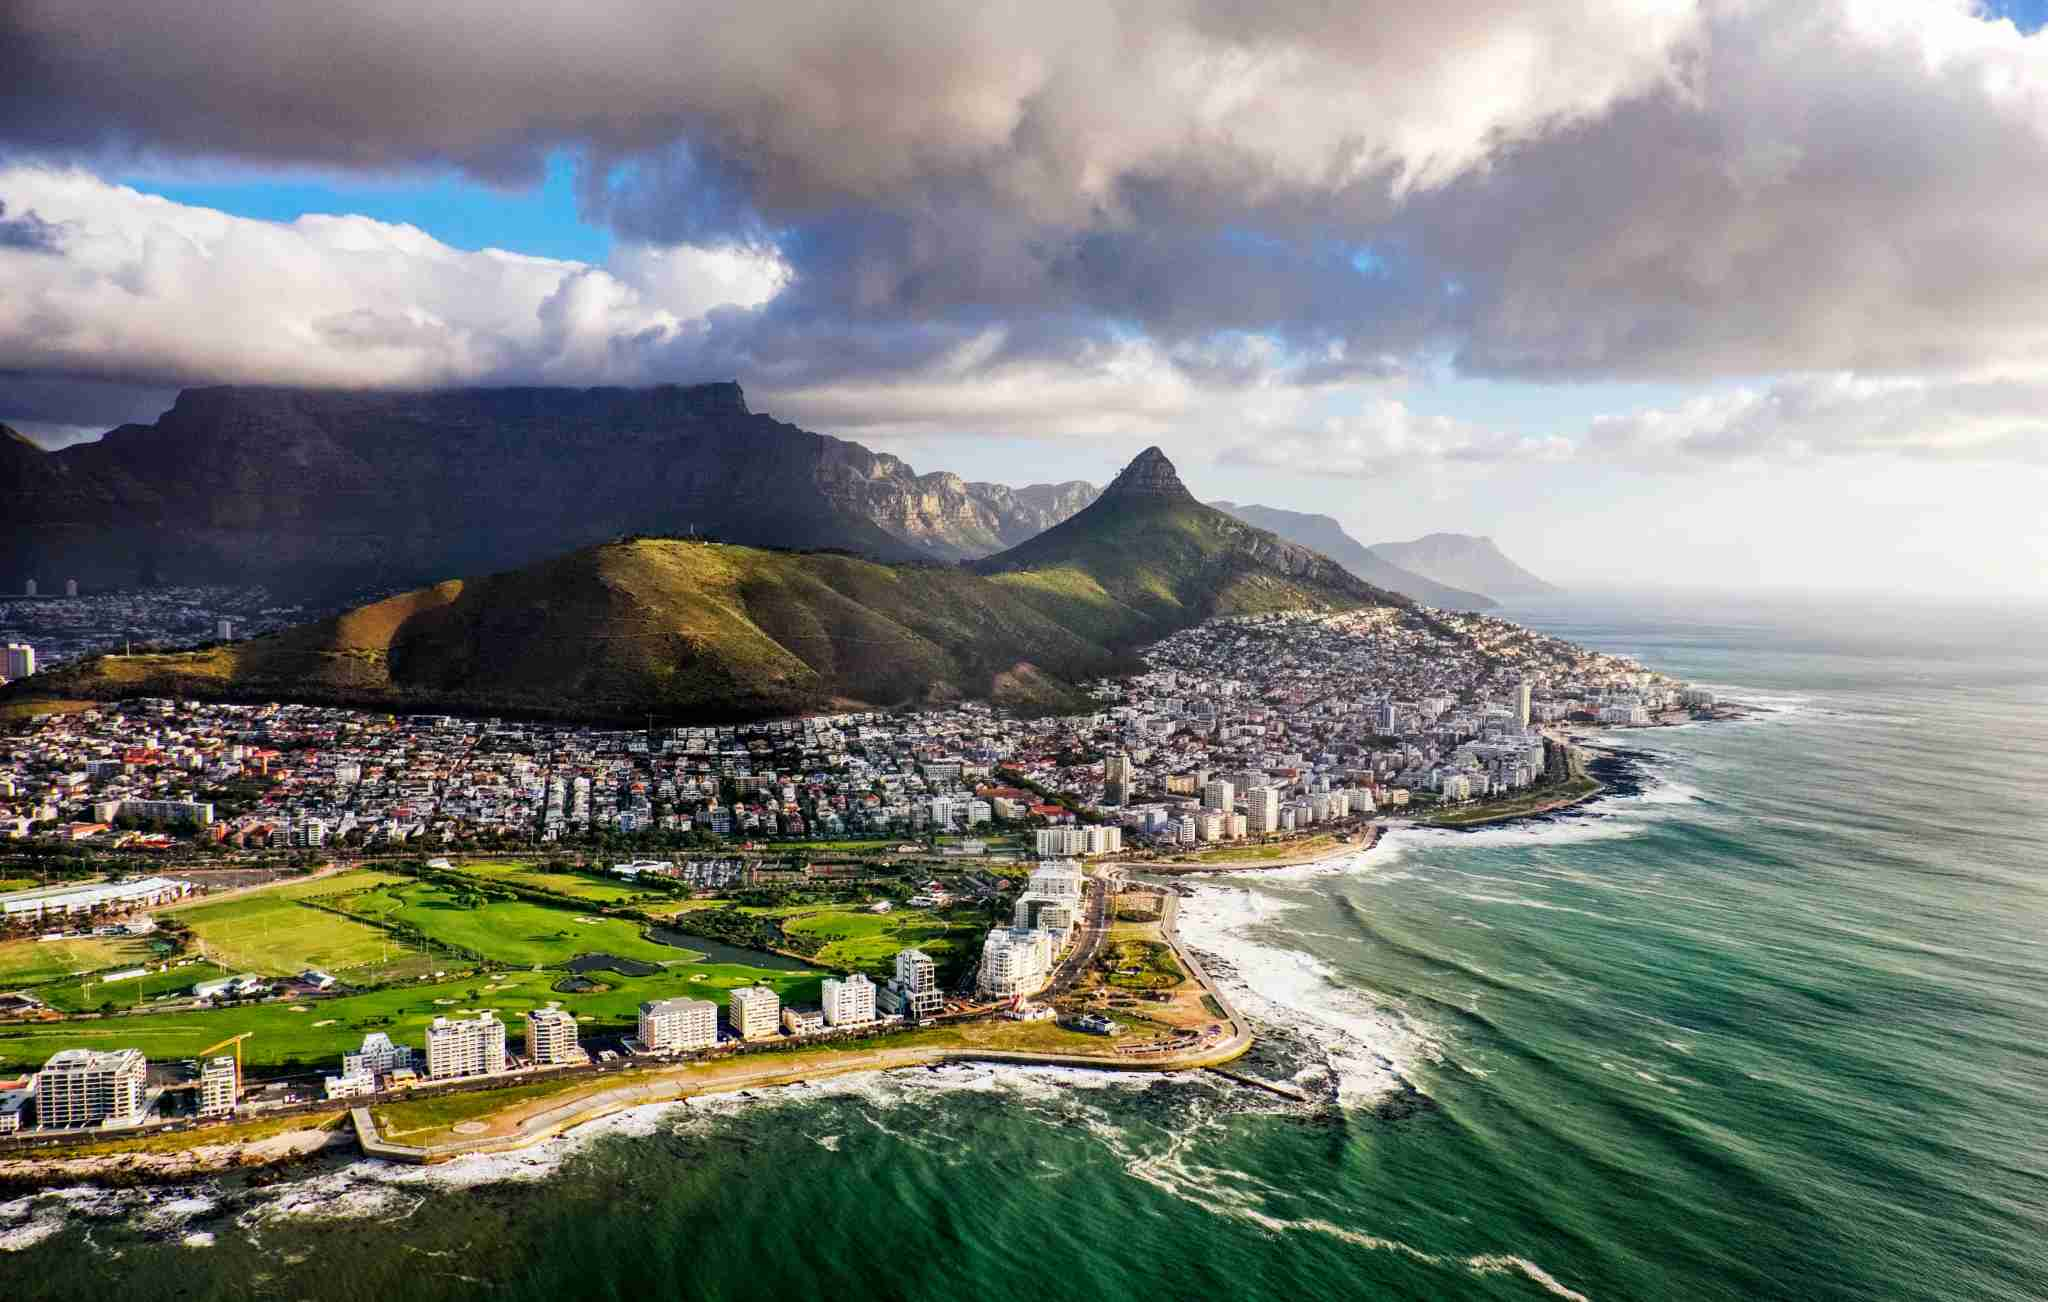 Sprawling view of Cape Town and the Mountains that frame it, Table Mountain and Lion